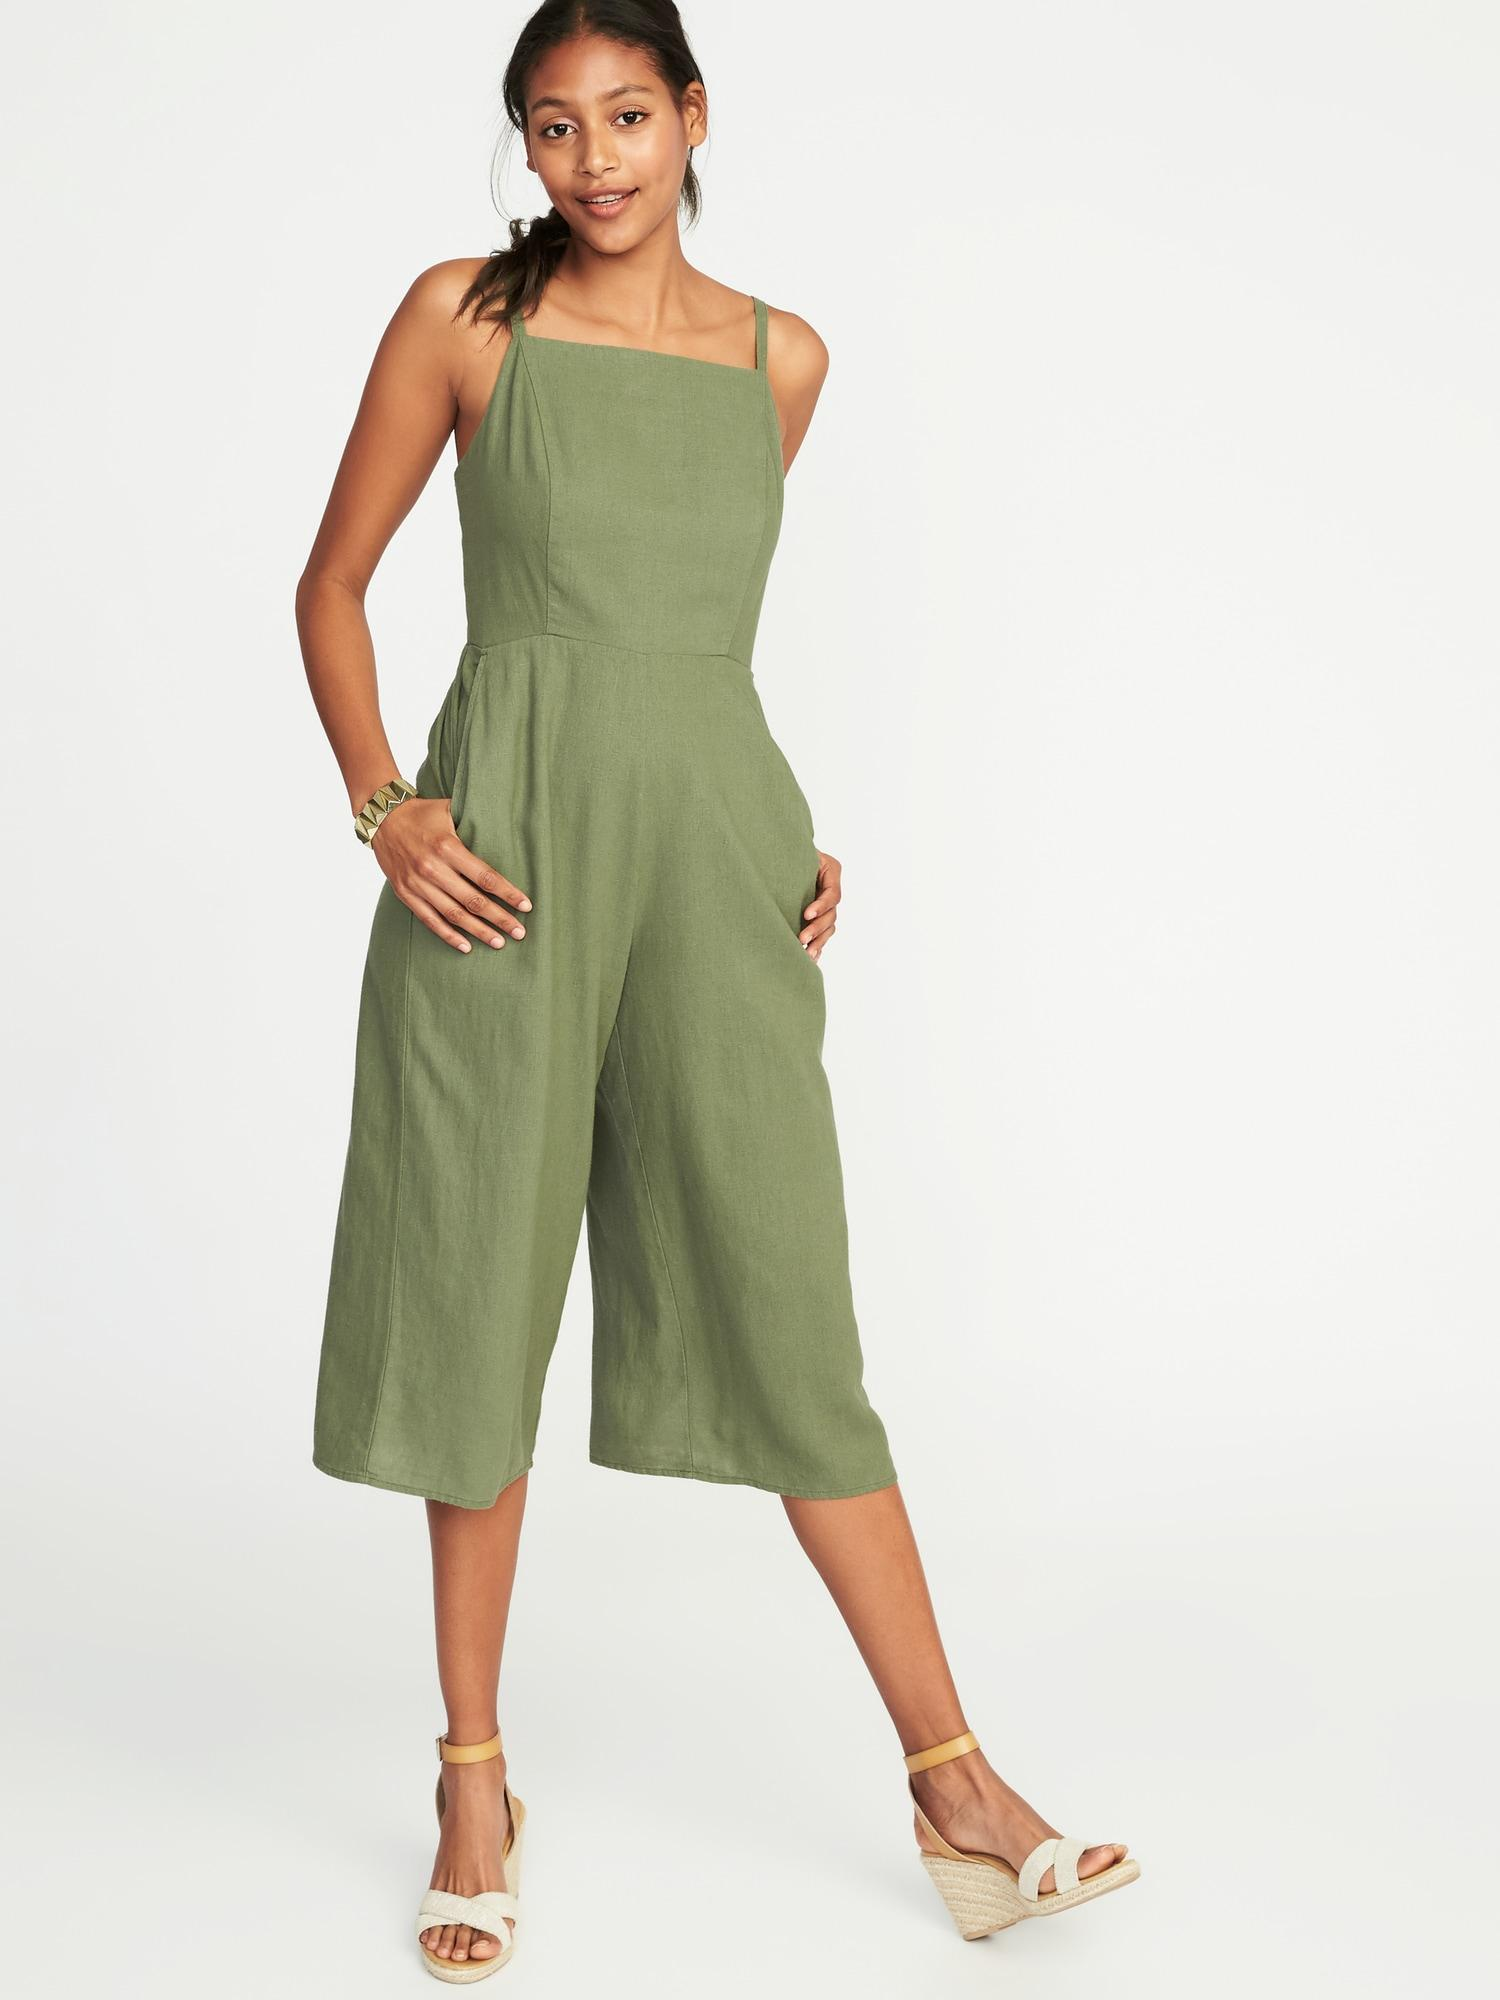 a6d3a858bee Lyst - Old Navy Waist-defined Square-neck Linen-blend Jumpsuit in Green